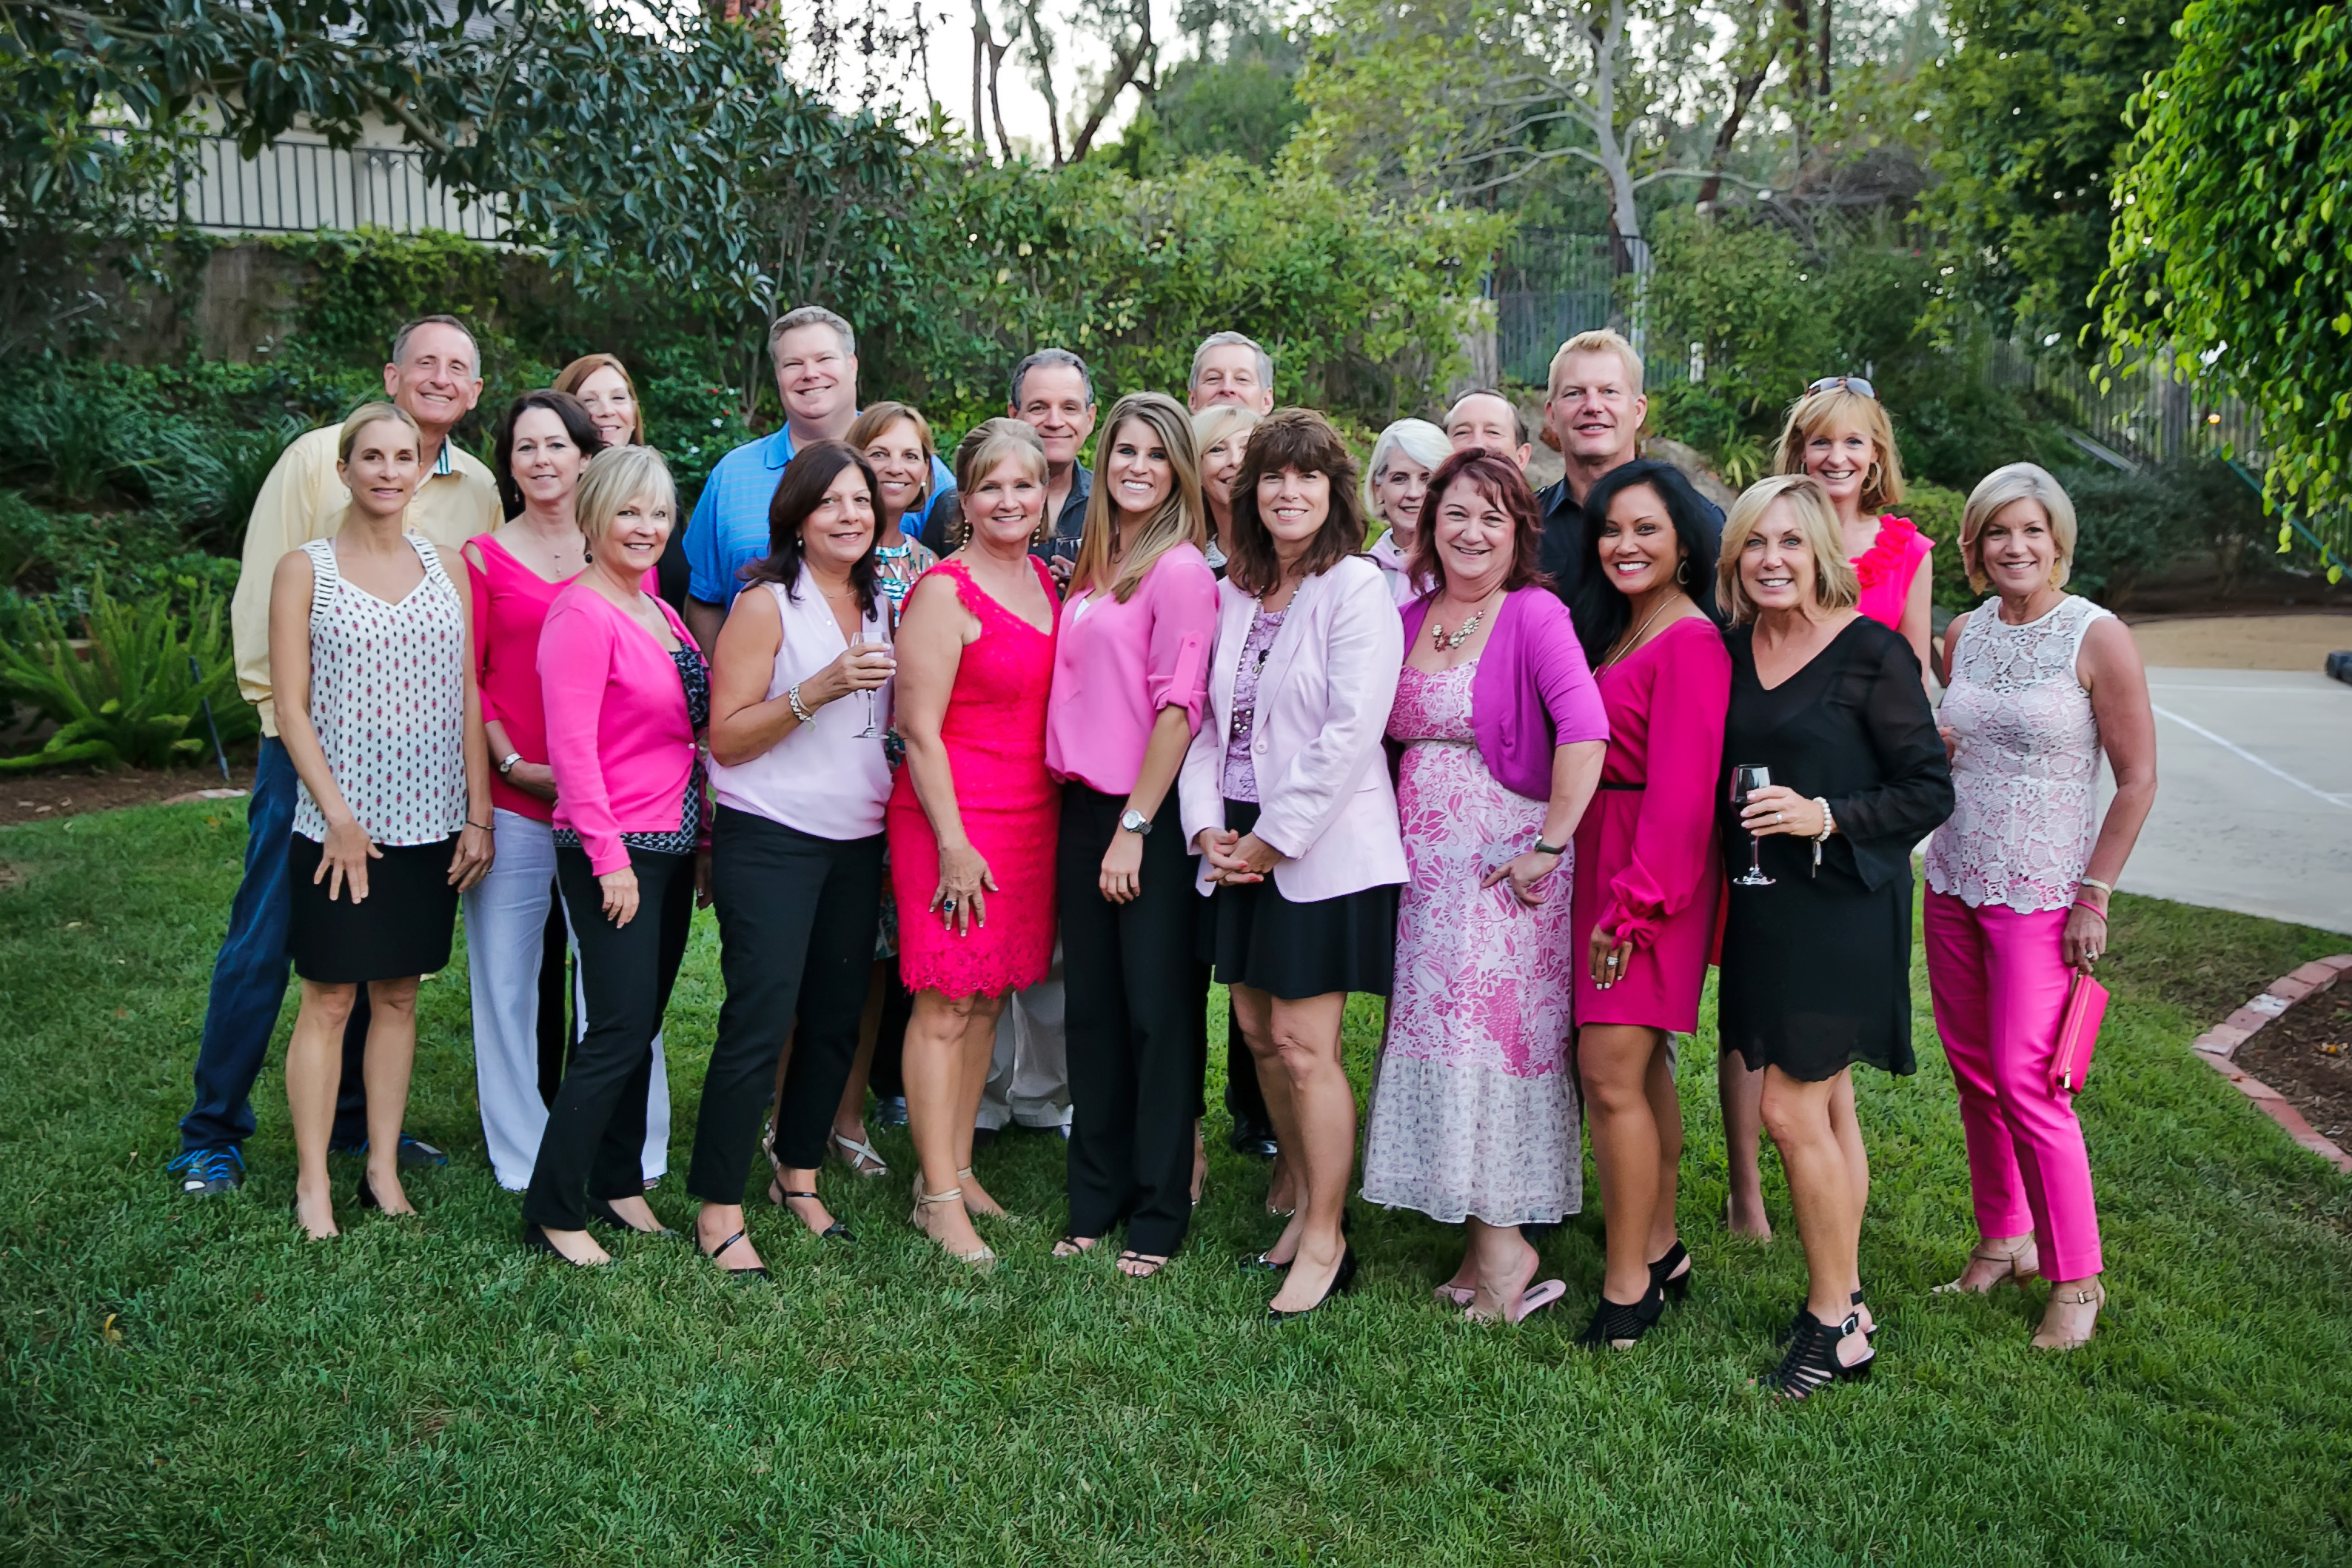 Annual Wear Pink Cocktail Party @ Holnagel's